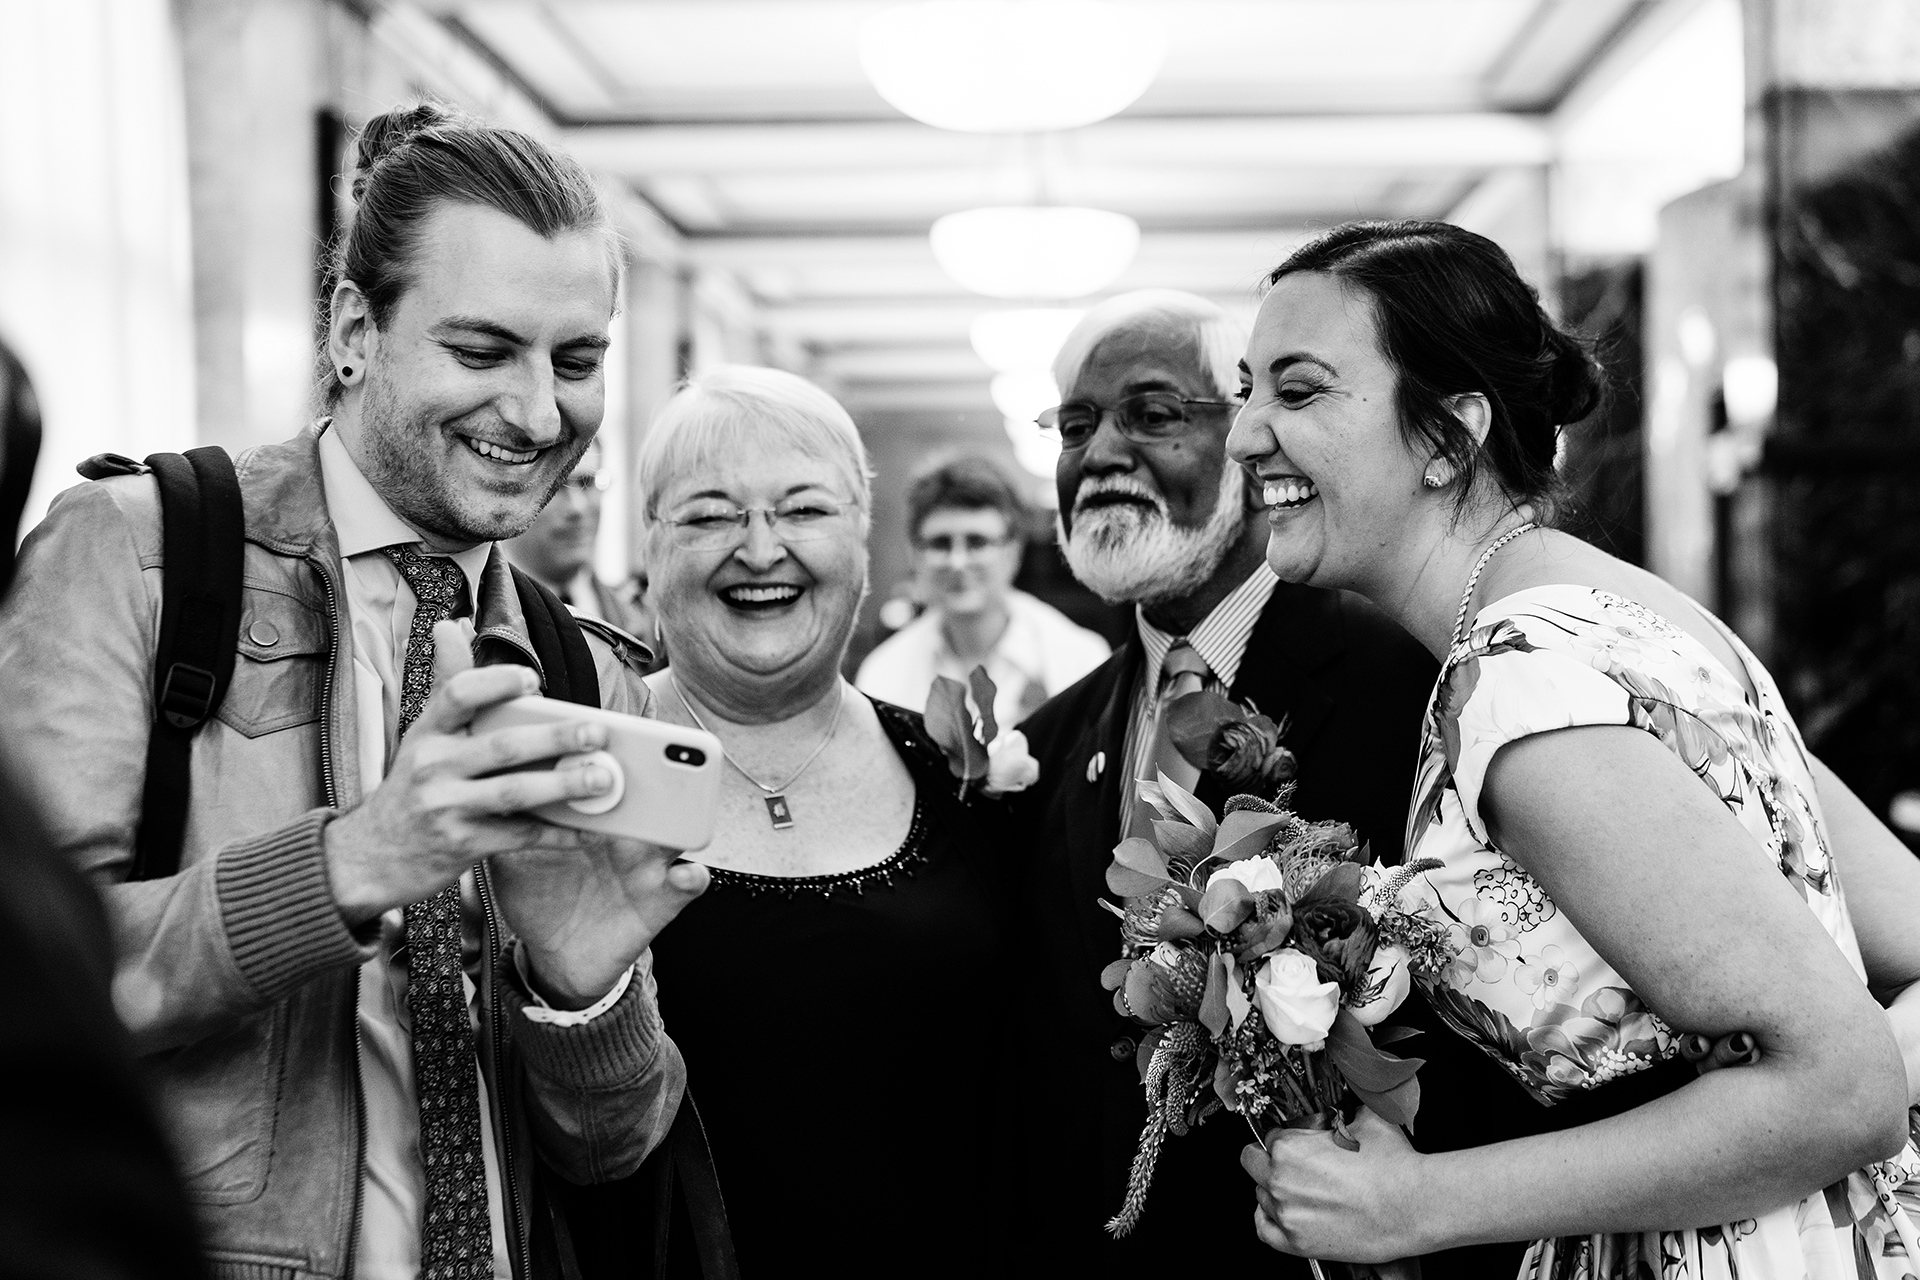 New York City Hall Elopement and Wedding Images | The bride and her guests look with delight at snapshots